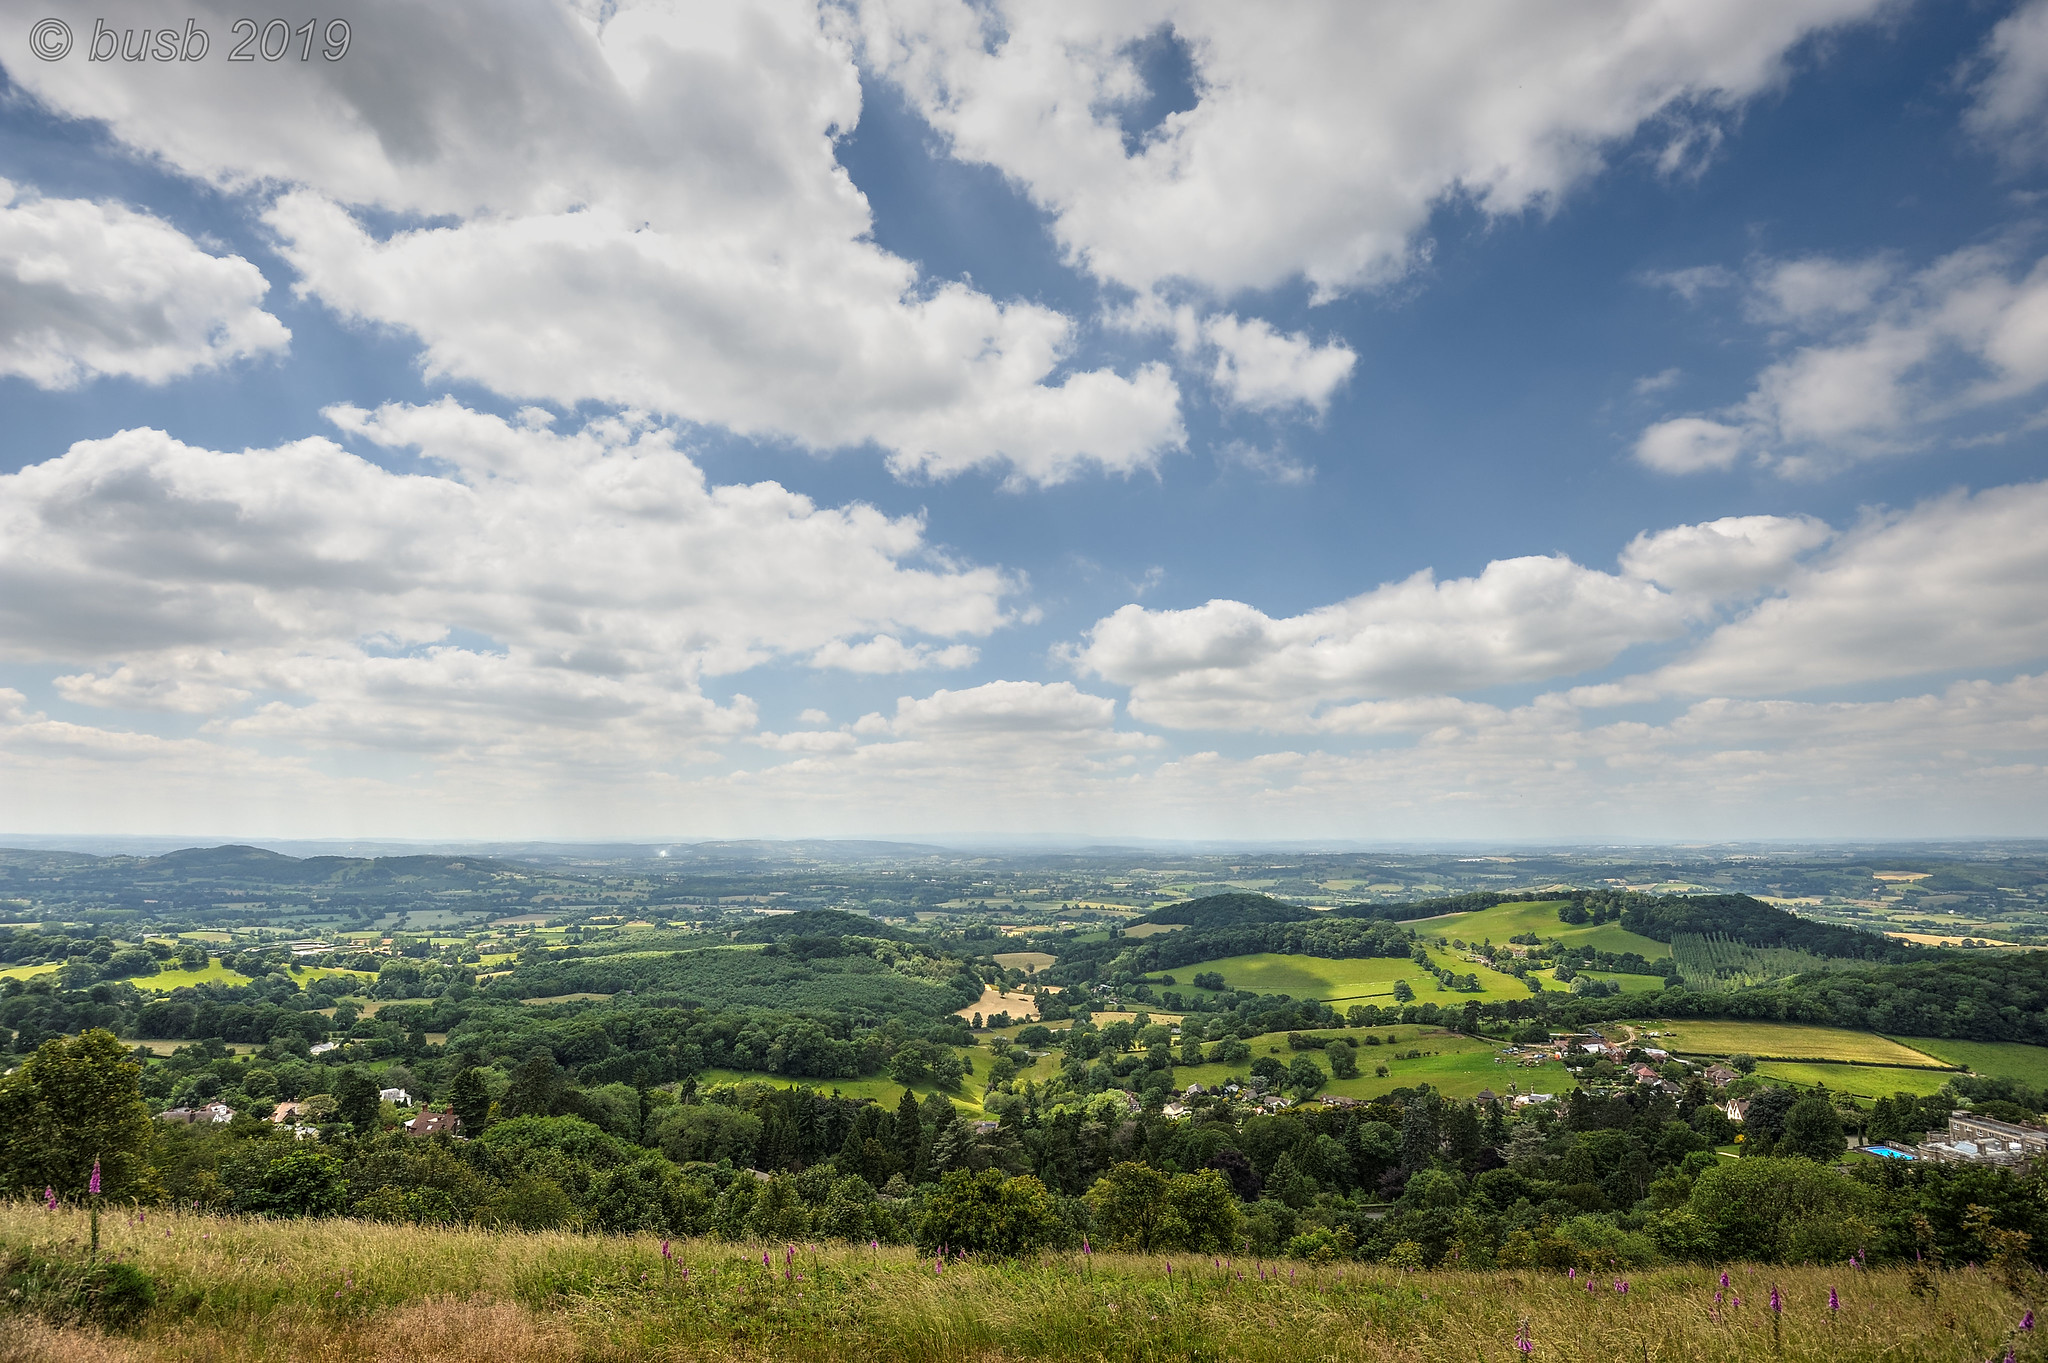 Herefordshire from the hills above Great Malvern, Worcestershire by Paul Busby.jpg